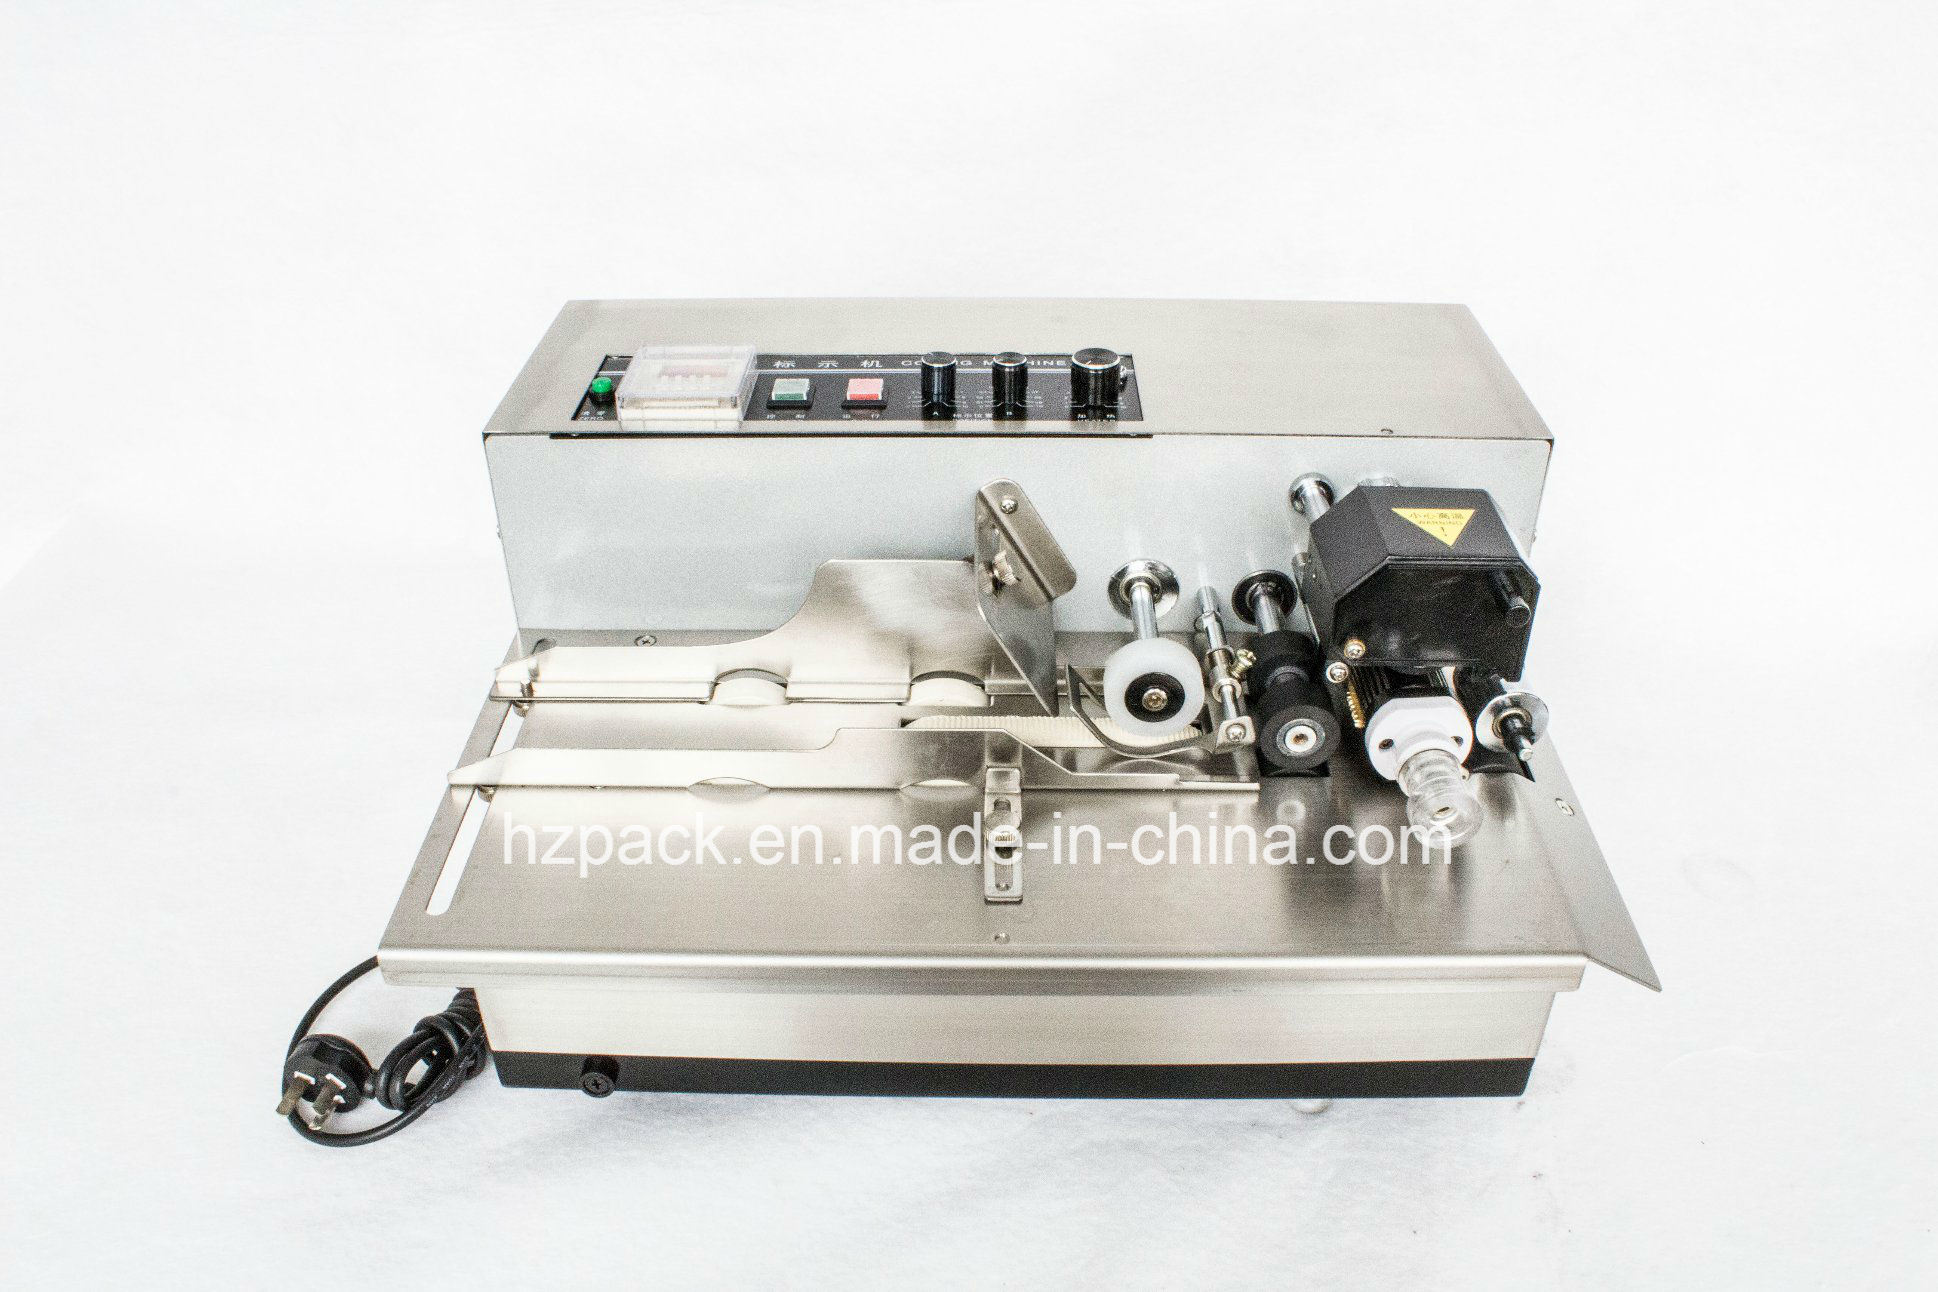 Coder/Coding Machine for Date Coding From China